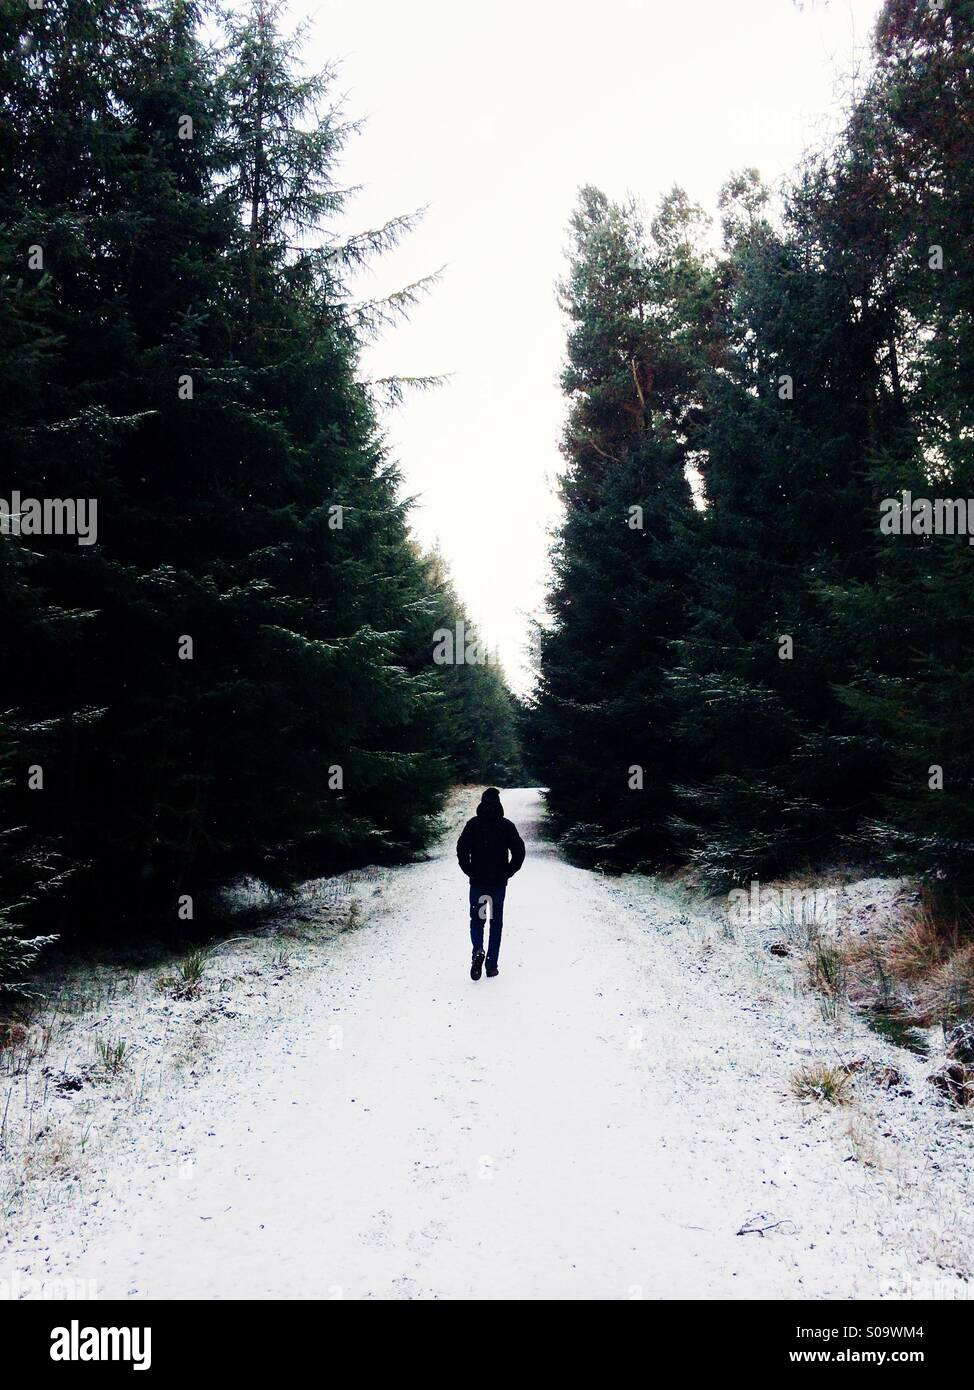 A man walks through a forest on a solitary hike with snow on the ground in winter. - Stock Image